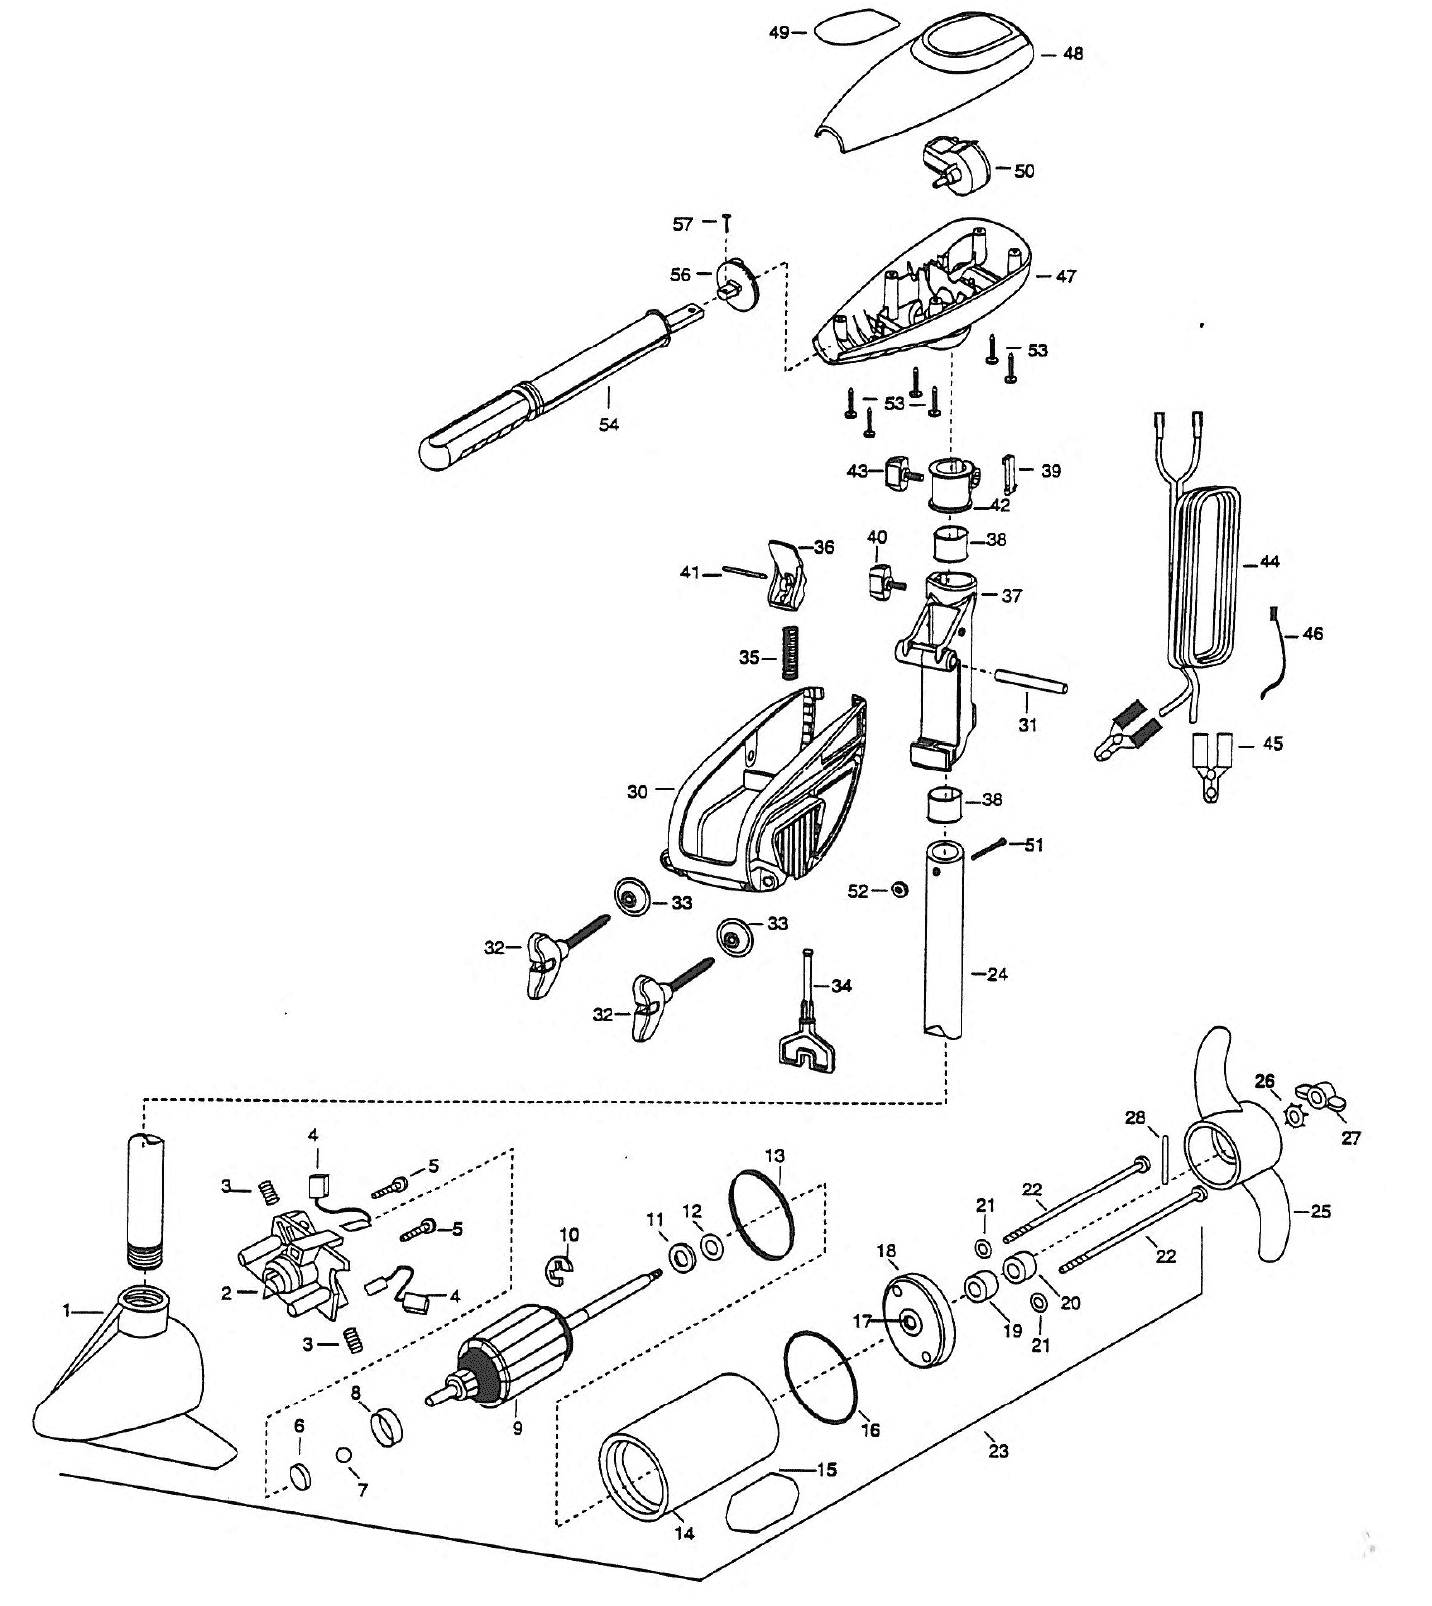 Wiring Diagram For Minn Kota Trolling Motors 44 Motor Battery 1999 Mk Endura30 Endura 30 Parts From Fish307 Com